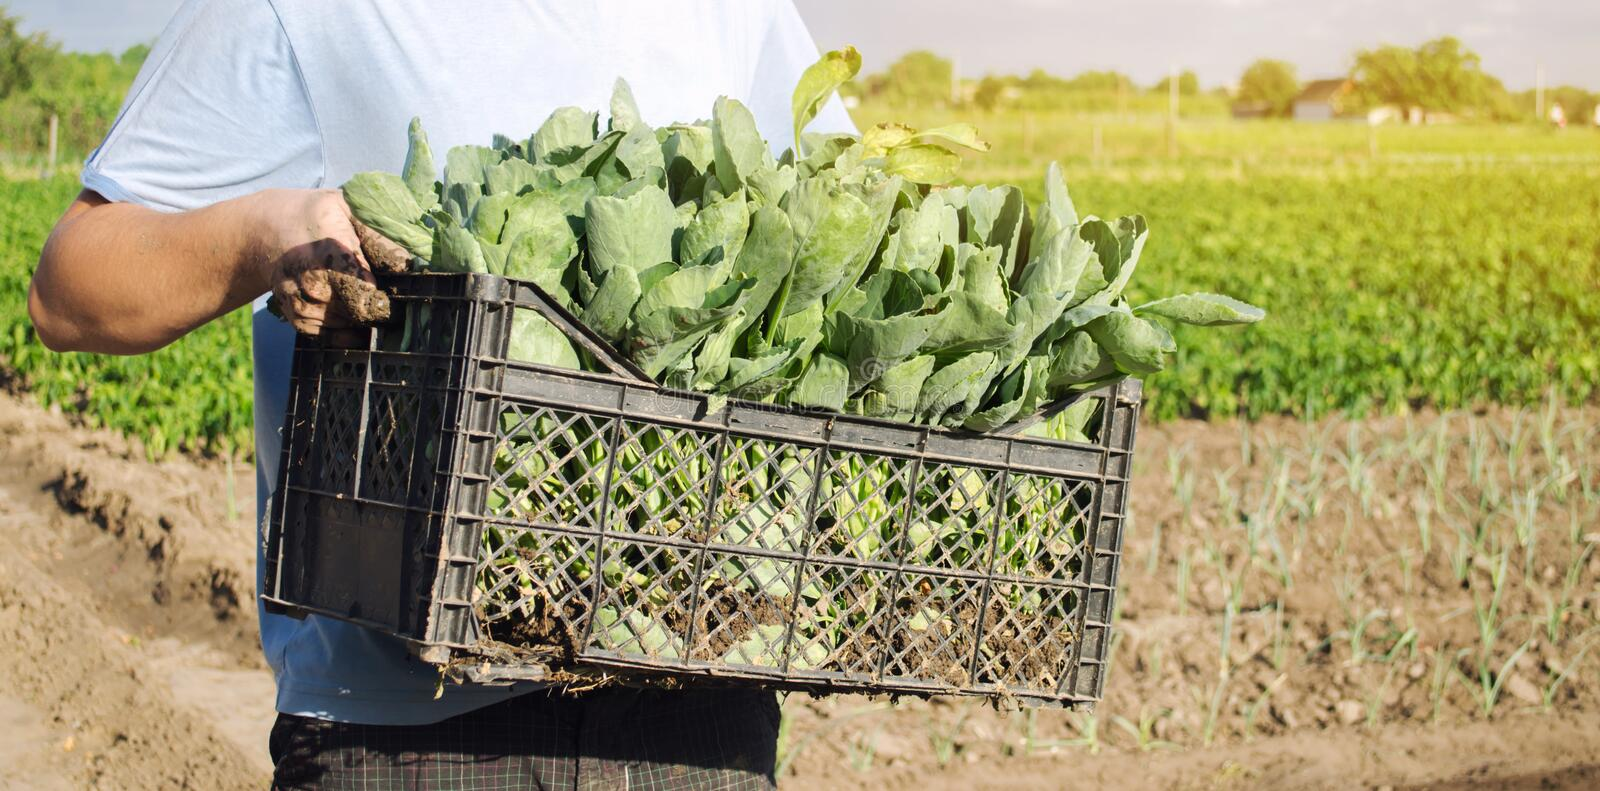 A farmer carry fresh cabbage seedlings in a box. Planting and growing organic vegetables. Agro-industry in third world countries,. Labor migrants. Family stock image